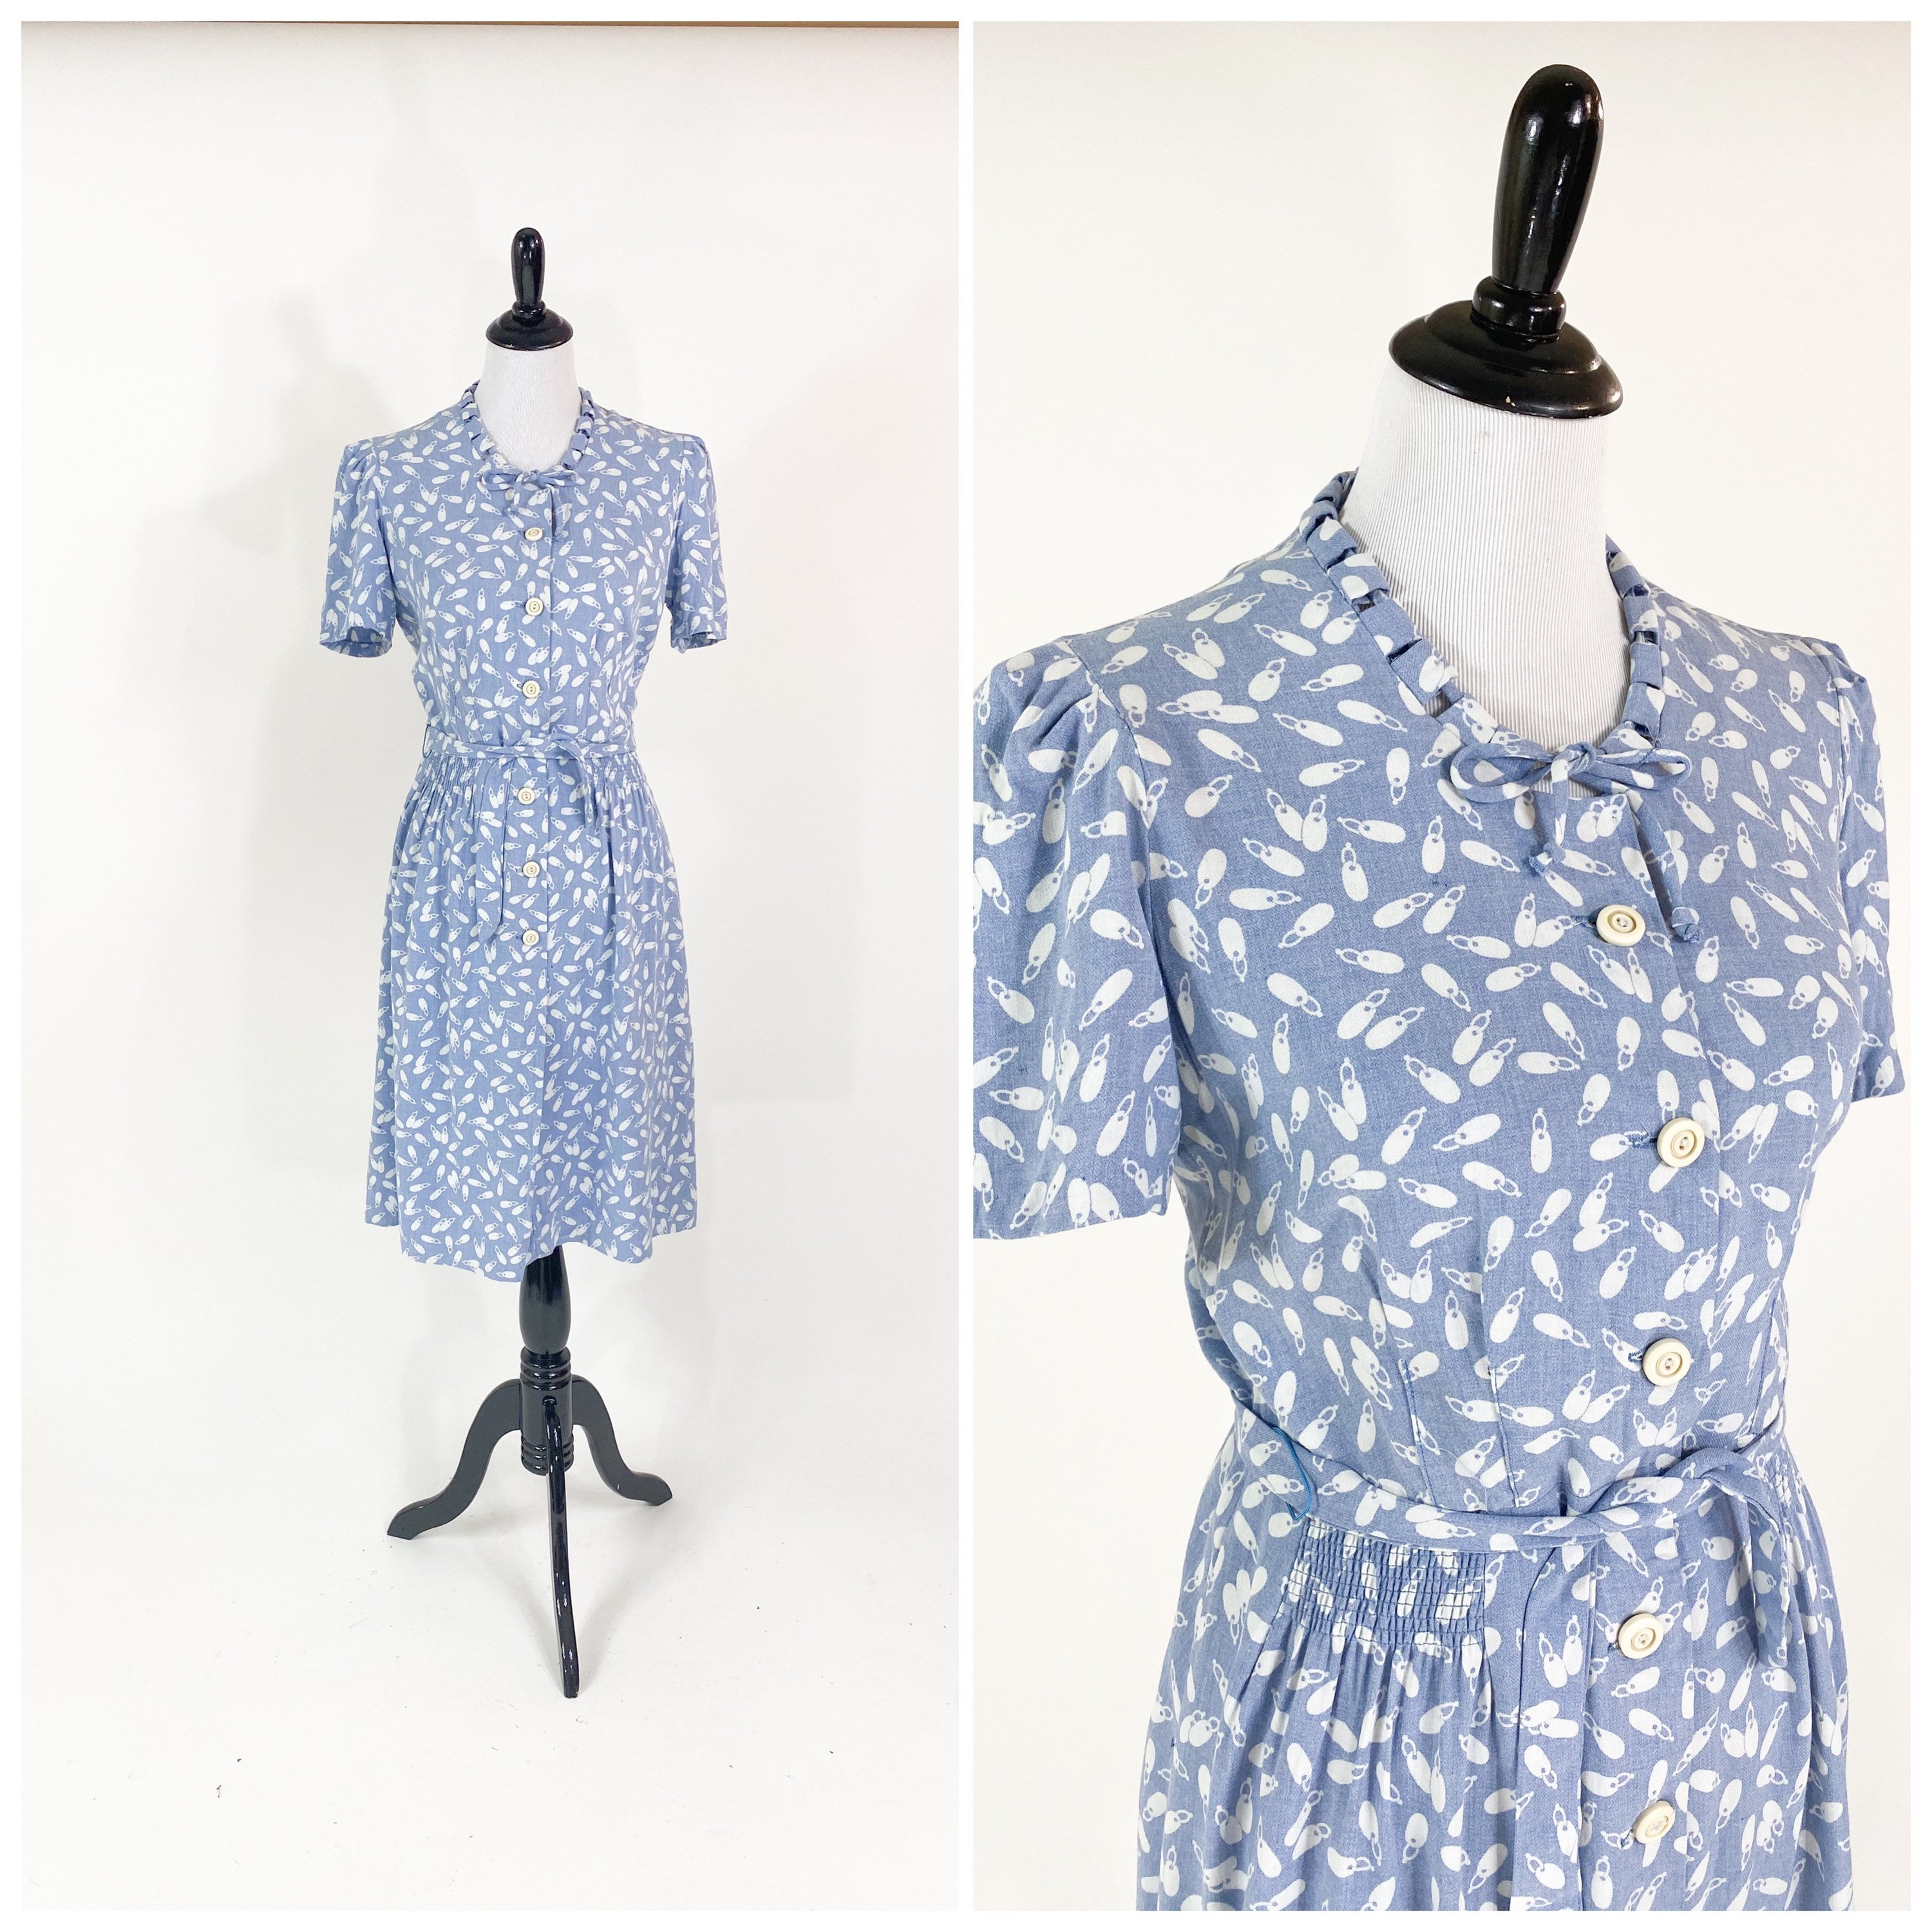 1940s Jewelry Styles and History Sweet Vintage 1940S Novelty Print Key Ring Soft Cotton Flannel Day Dress M $24.00 AT vintagedancer.com